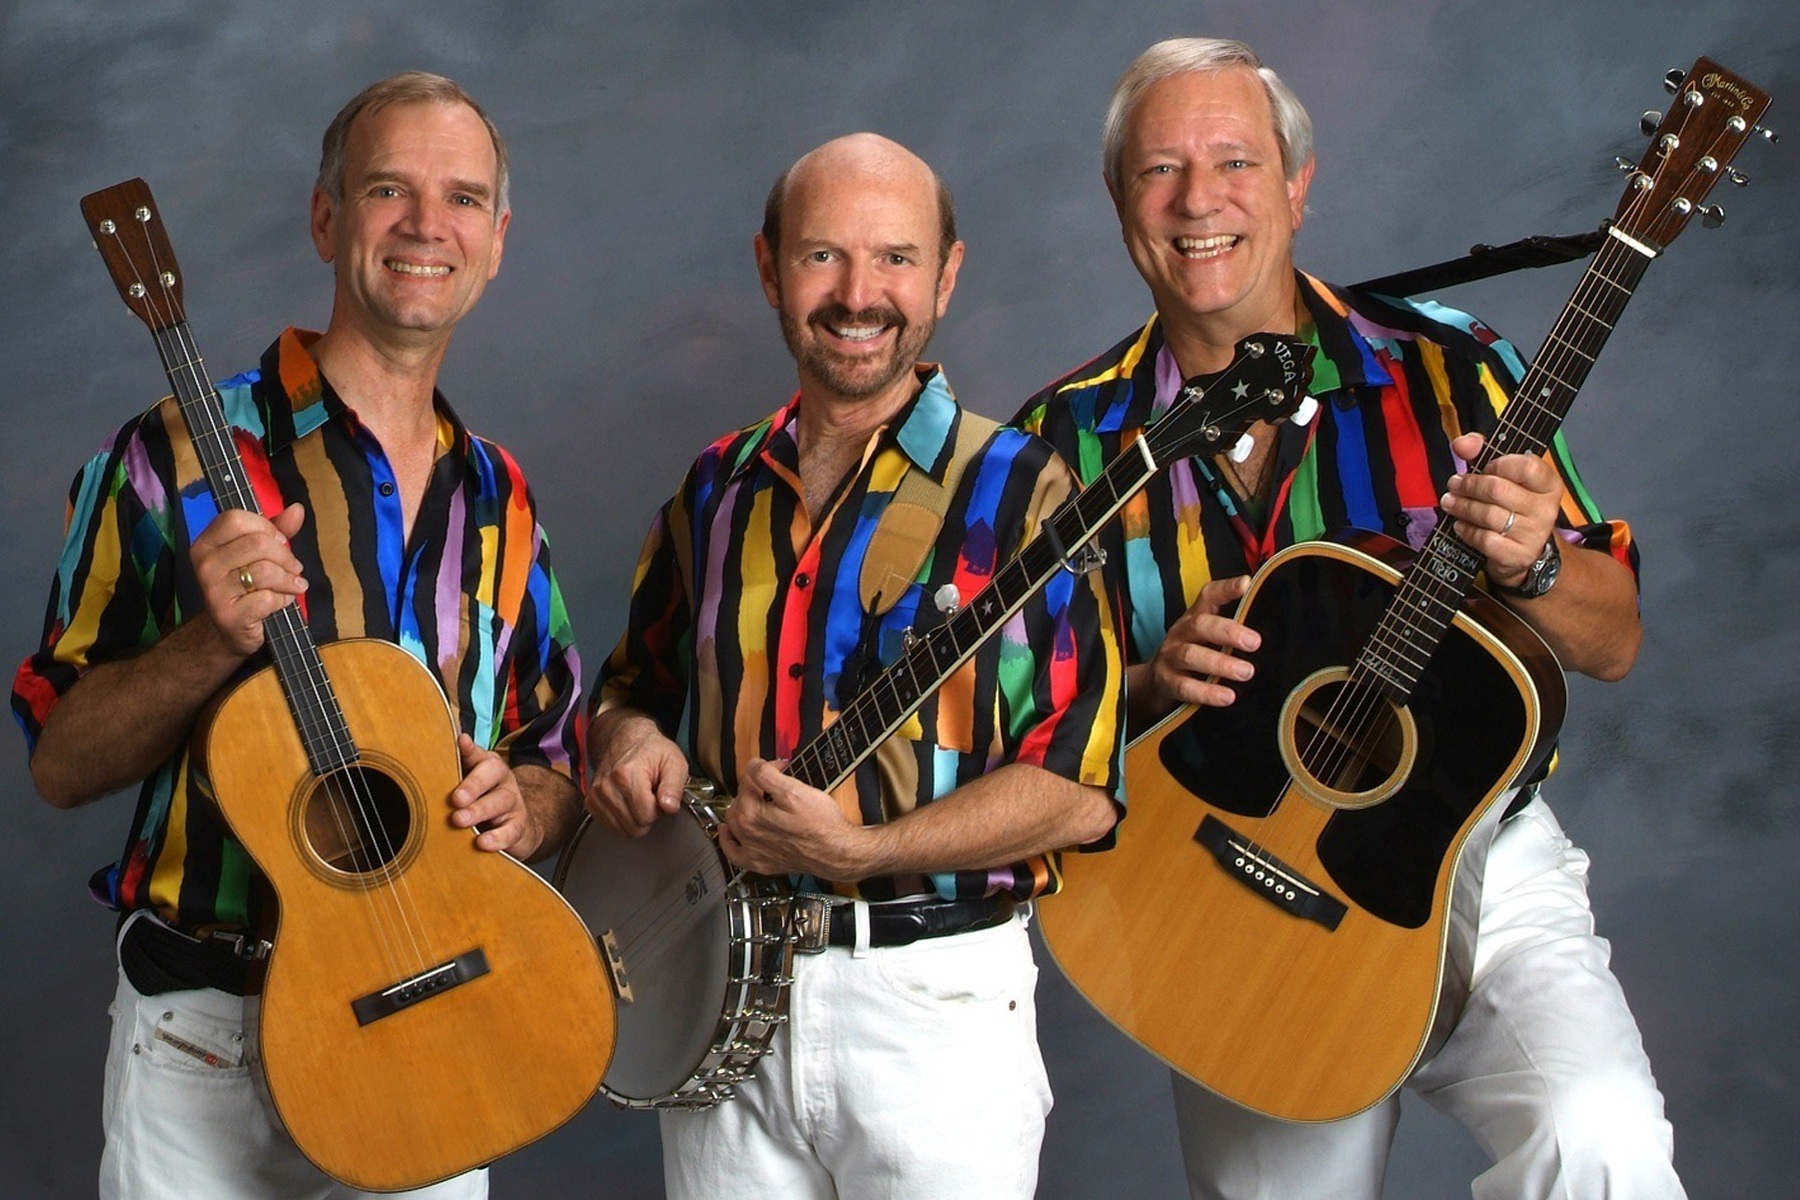 Letter the kingston trio to perform in rapids news and for The kingston